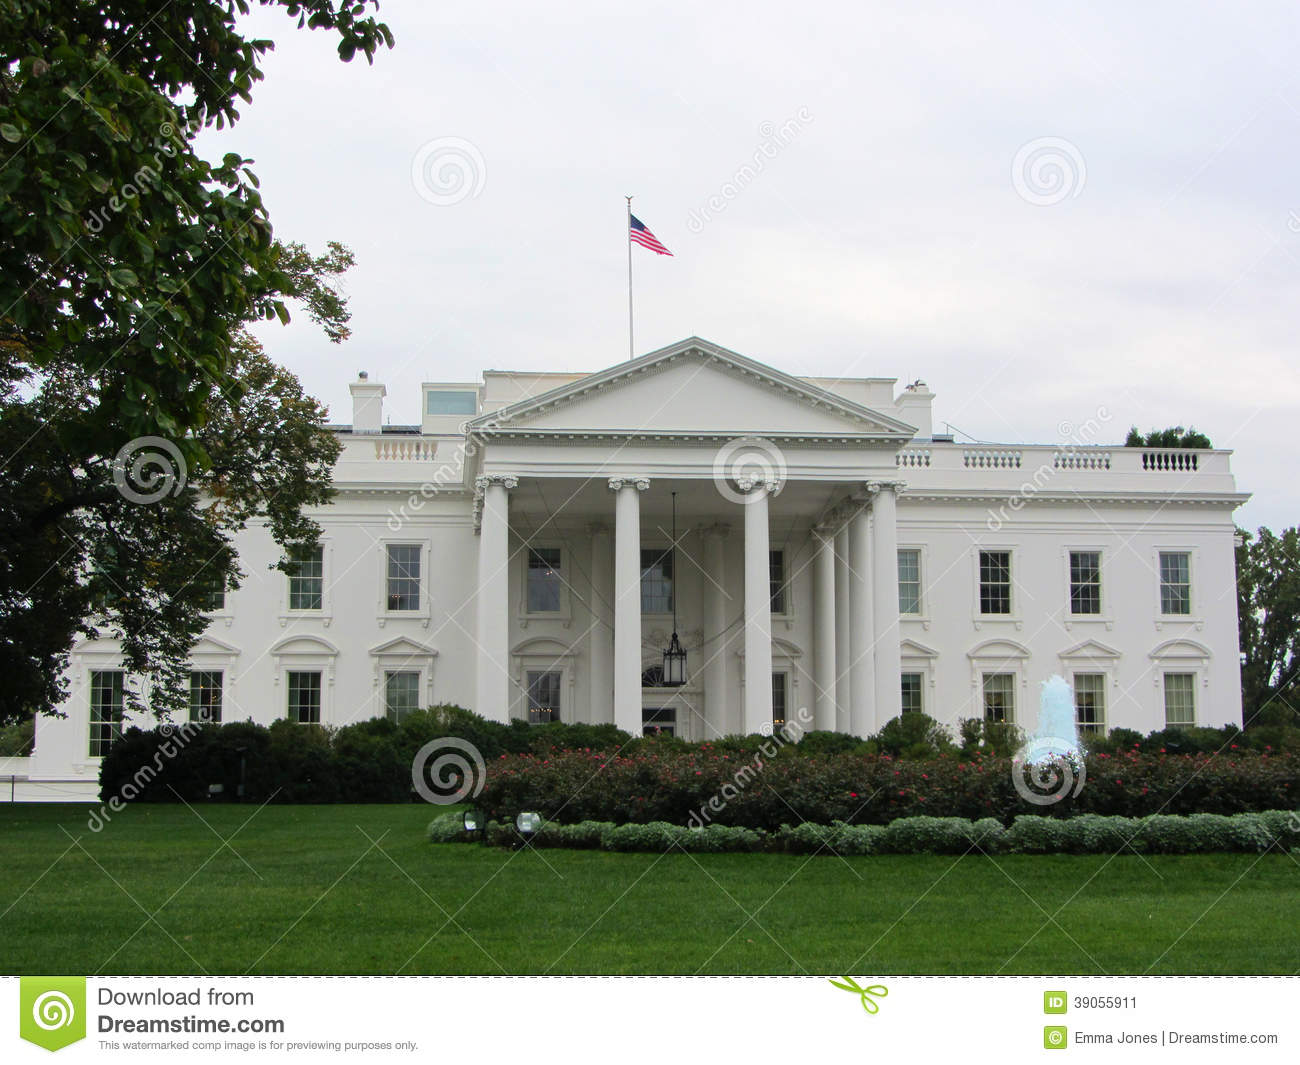 La maison blanche washington dc etats unis